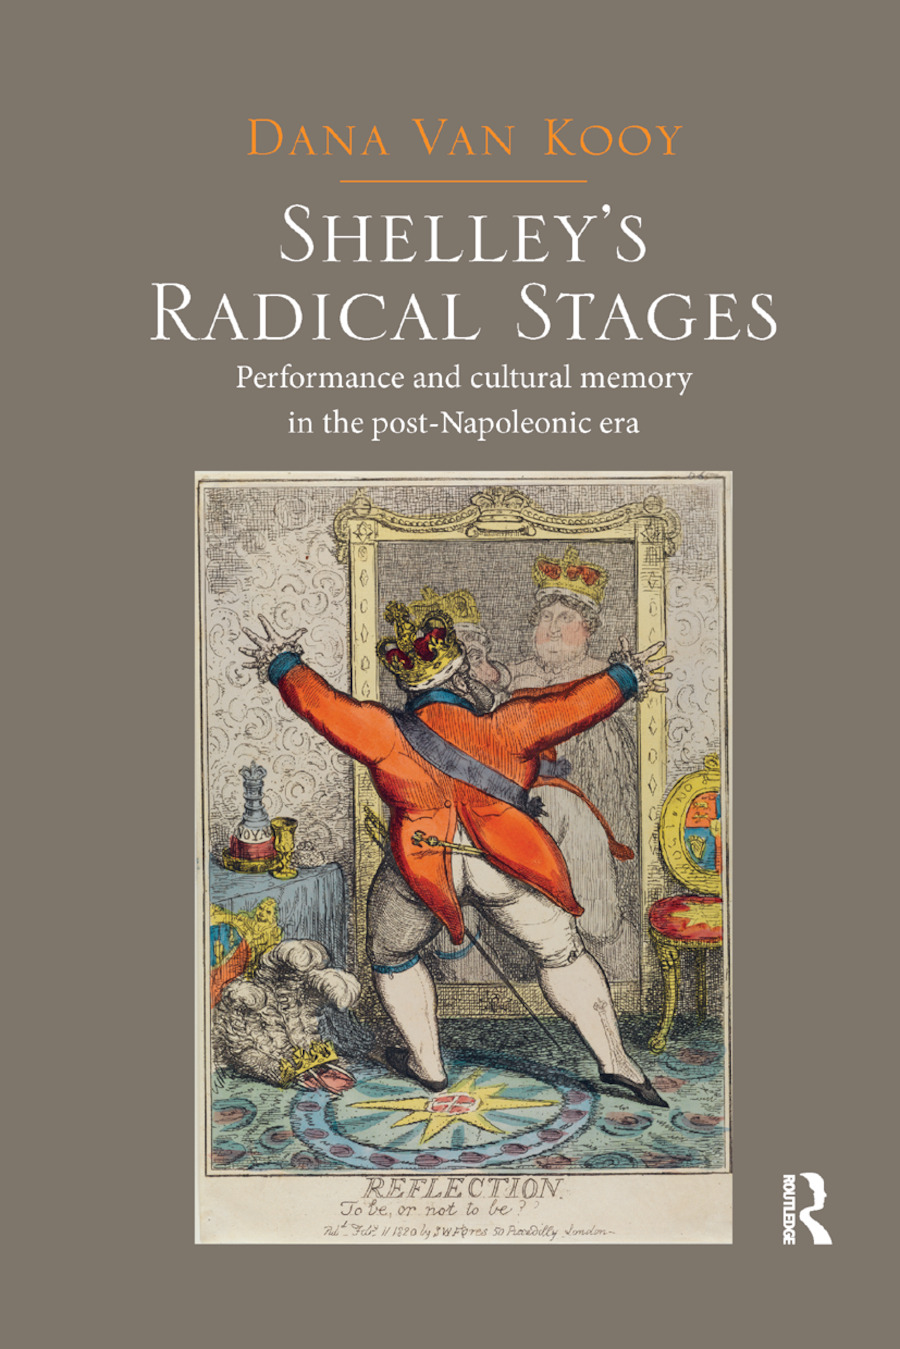 Shelley's Radical Stages